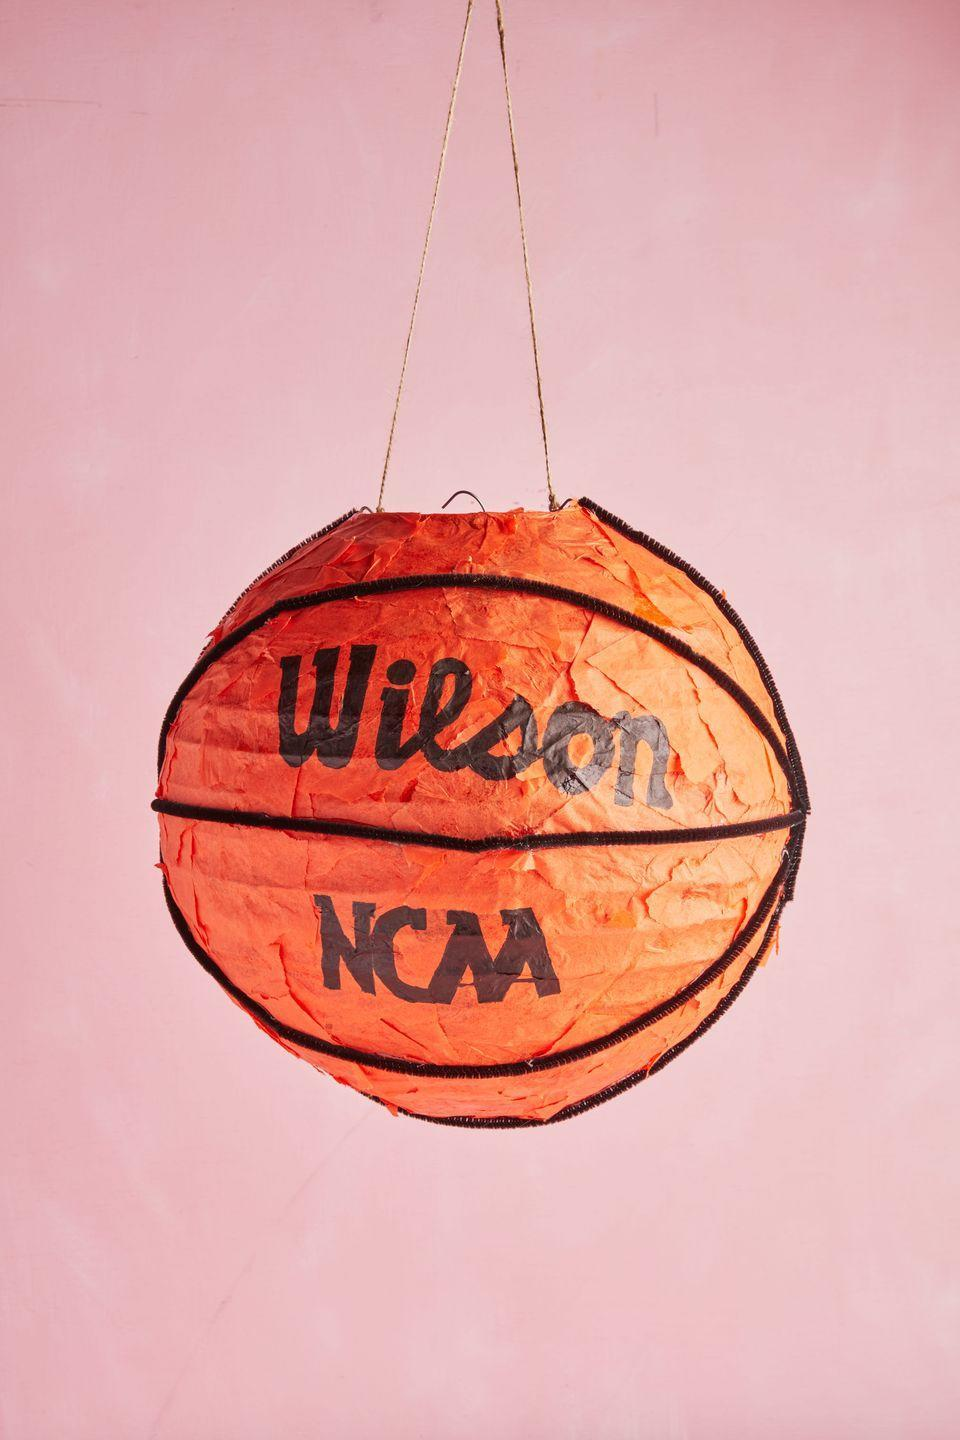 "<p>Perfect for hanging off the back of a school chair this basketball ""box"" is a real slam dunk!<strong><br></strong></p><p><strong>To make:</strong> Papier-mâché orange tissue paper to a 12-inch round paper lantern. Use black pipe cleaners to create segments, adhering with hot gun. Use a black marker to write words. Wrap twine around wire on the top of the lantern for hanging.</p><p><a class=""link rapid-noclick-resp"" href=""https://www.amazon.com/Weddingstar-Round-Paper-Lantern-White/dp/B005S4K06C/ref=sr_1_3?tag=syn-yahoo-20&ascsubtag=%5Bartid%7C10050.g.25844424%5Bsrc%7Cyahoo-us"" rel=""nofollow noopener"" target=""_blank"" data-ylk=""slk:SHOP PAPER LANTERN"">SHOP PAPER LANTERN</a></p>"